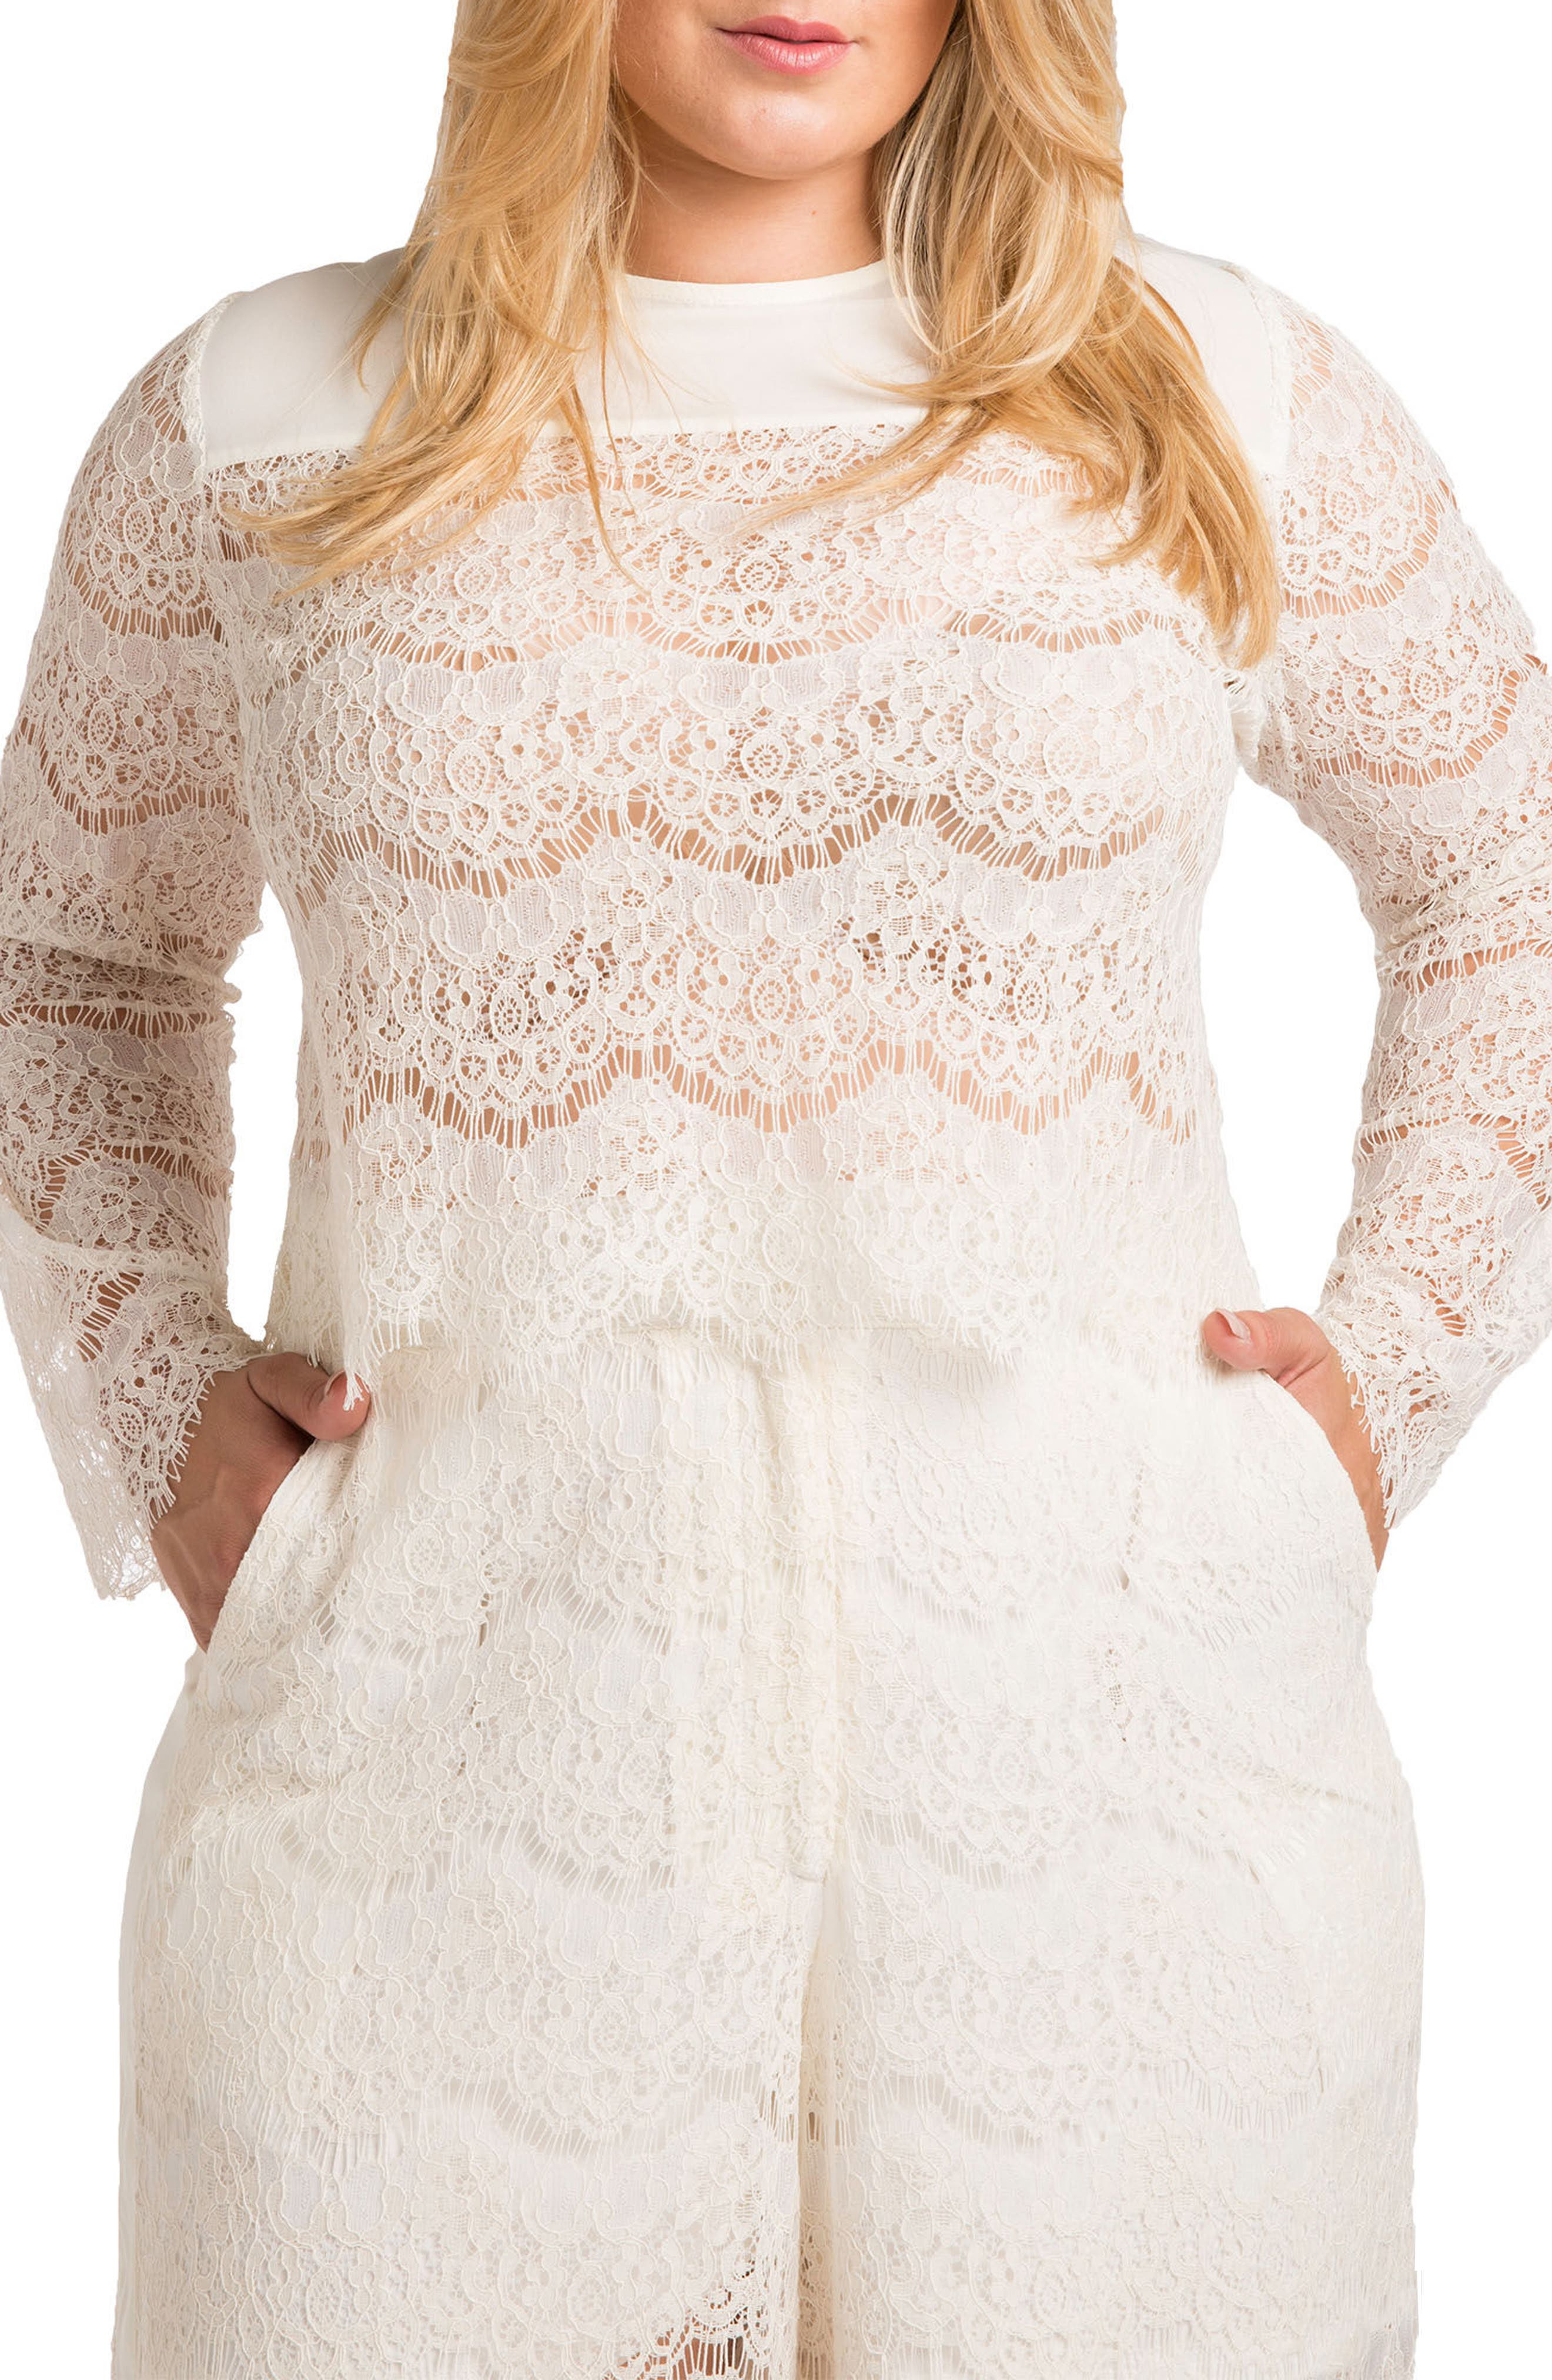 Standards & Practices Sydney Lace Skimmer Top (Plus Size)